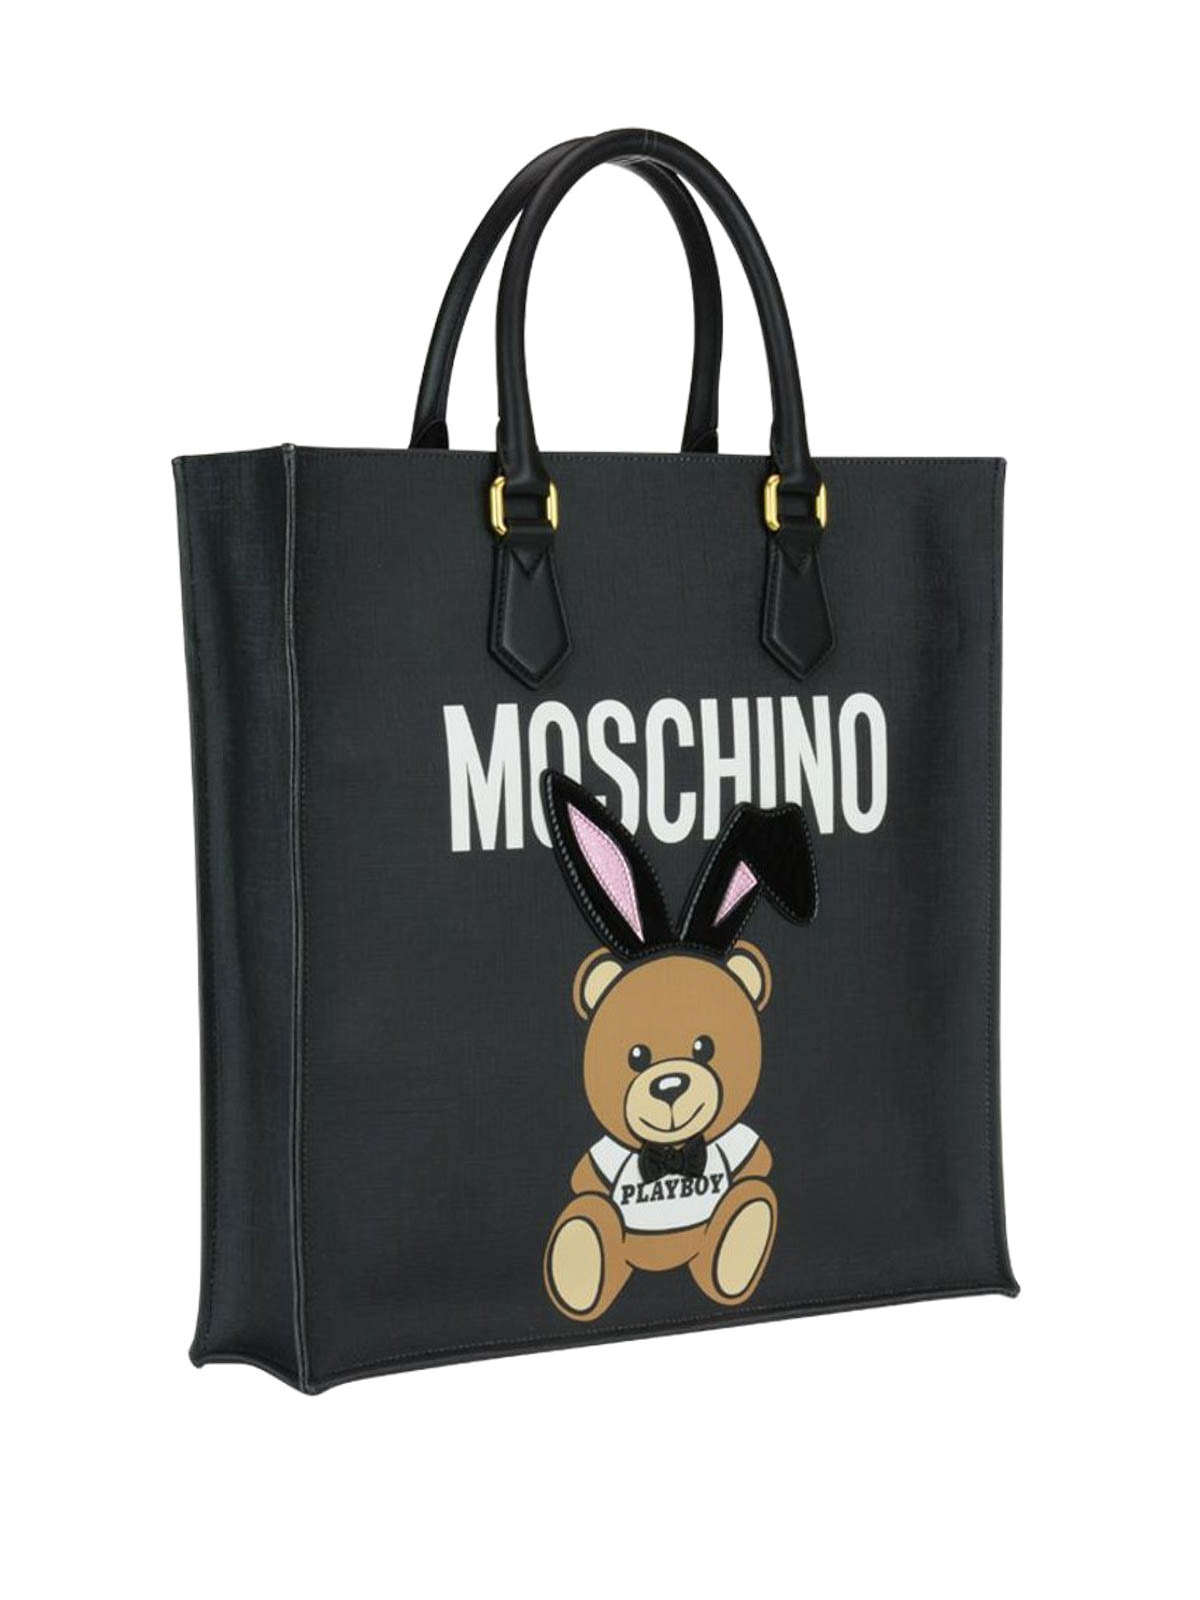 Clearance Genuine Wholesale Price Sale Online Moschino Ready to bear playboy tote bag NBshr6